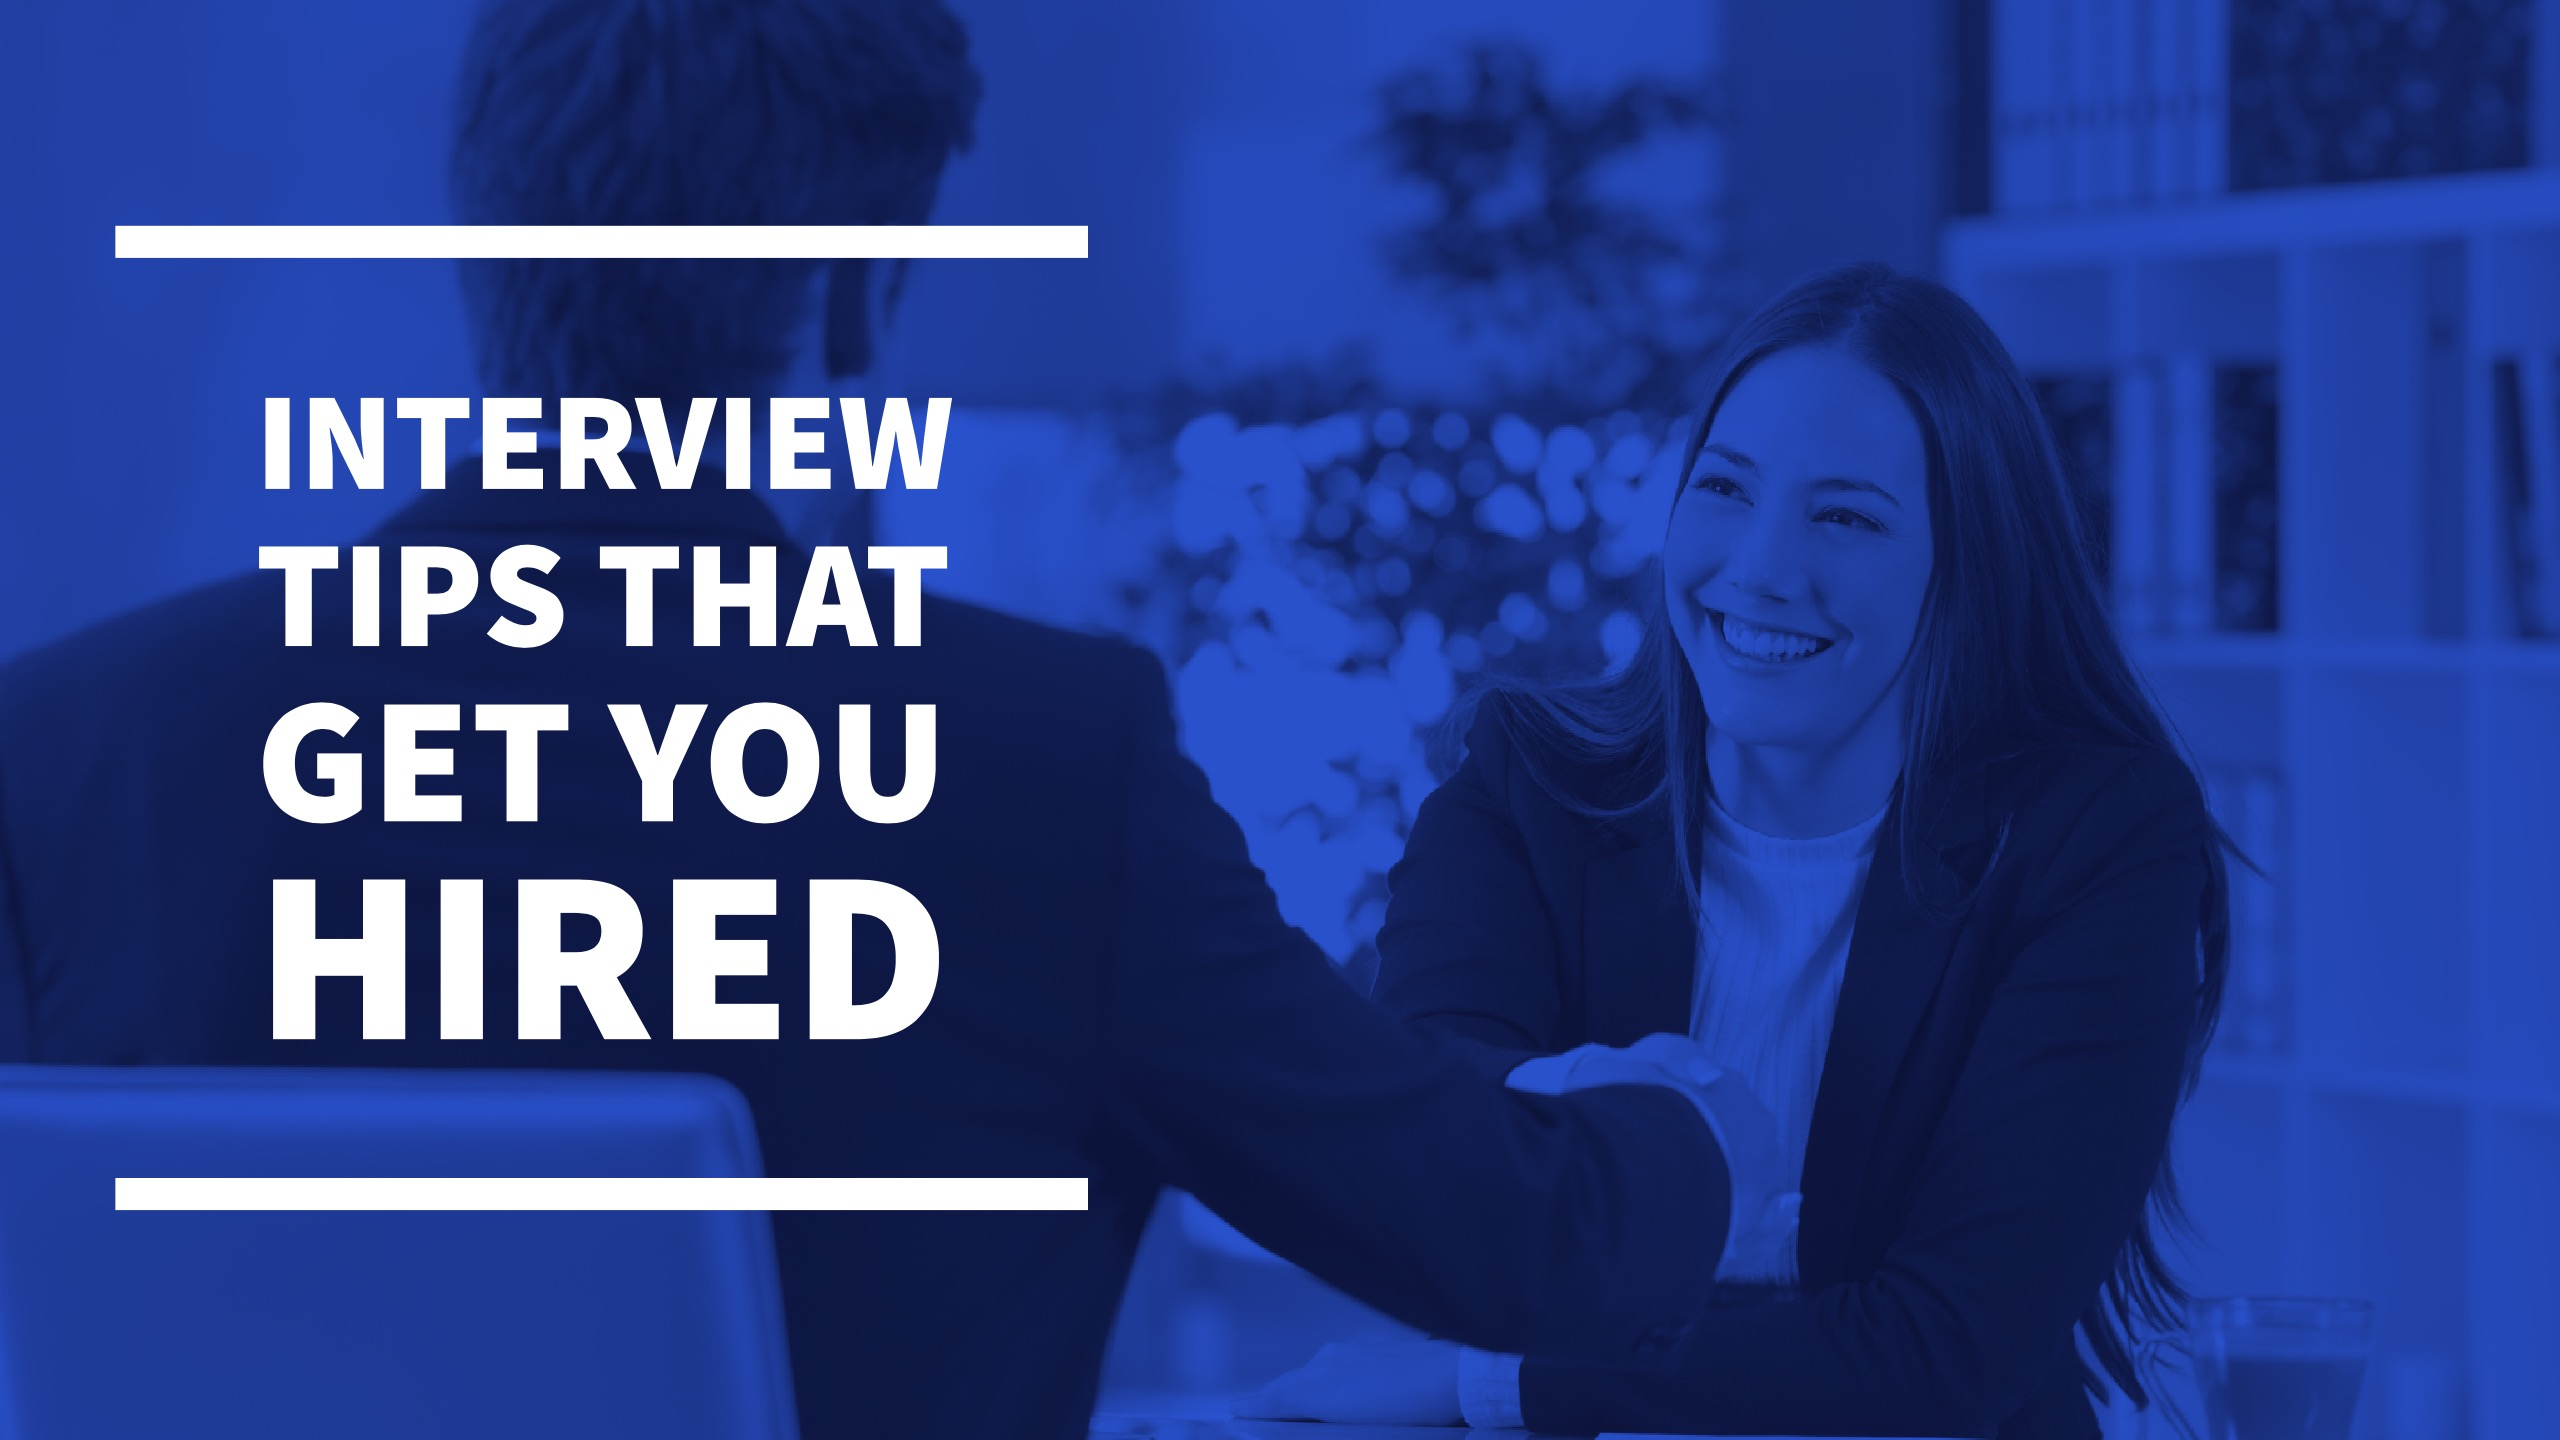 ... Letter And Resume And Received An Invitation To Interview For That Job  You Really Want. Next, You Need To Nail The Job Interview To Get The Job  Offer.